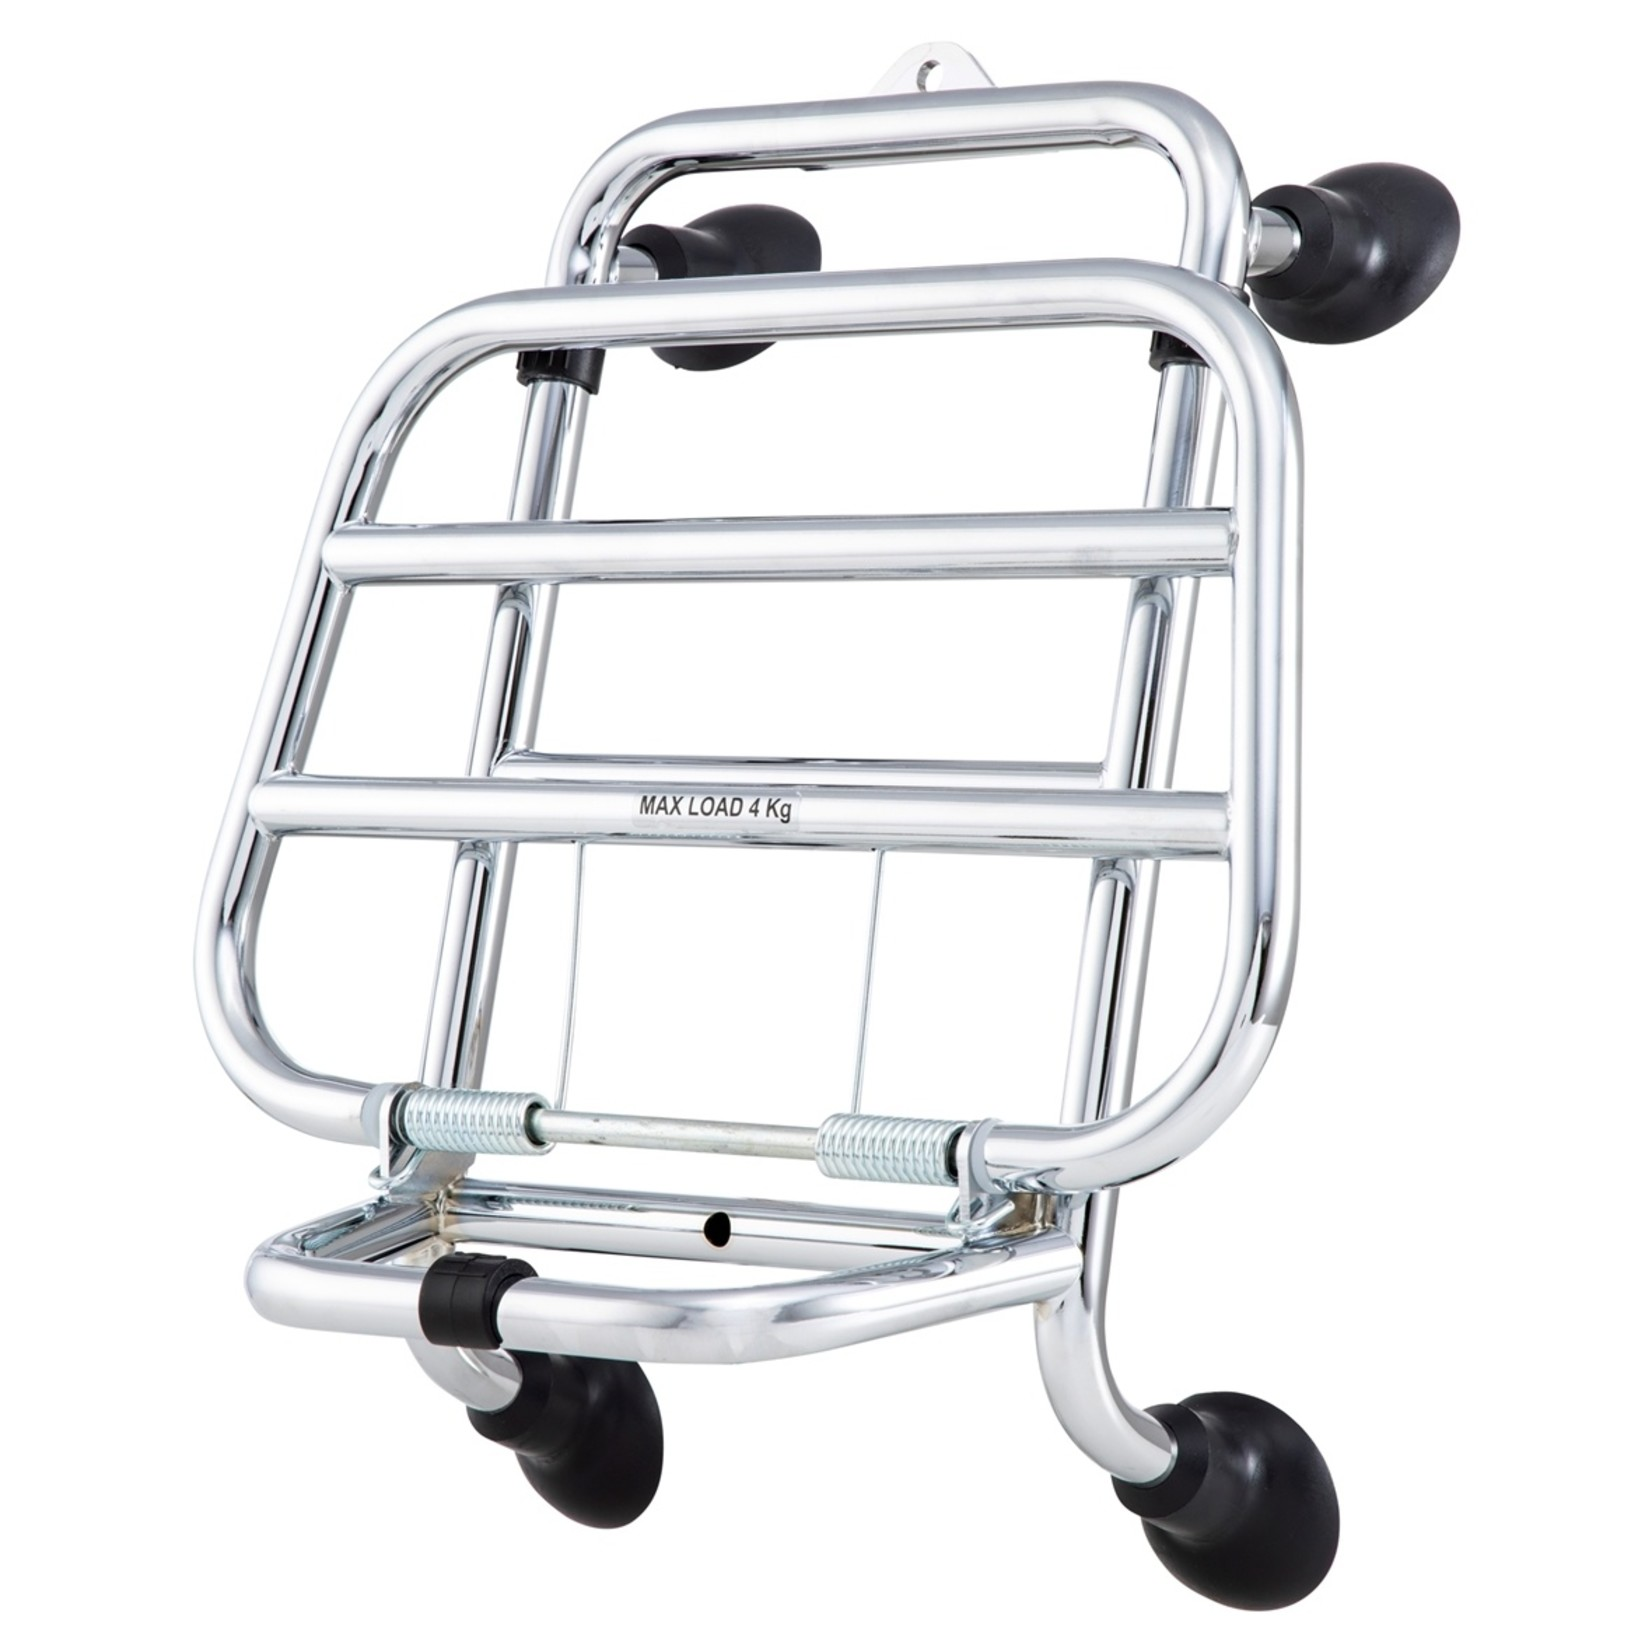 Accessories Rack, Front GTS/V300 HPE Chrome